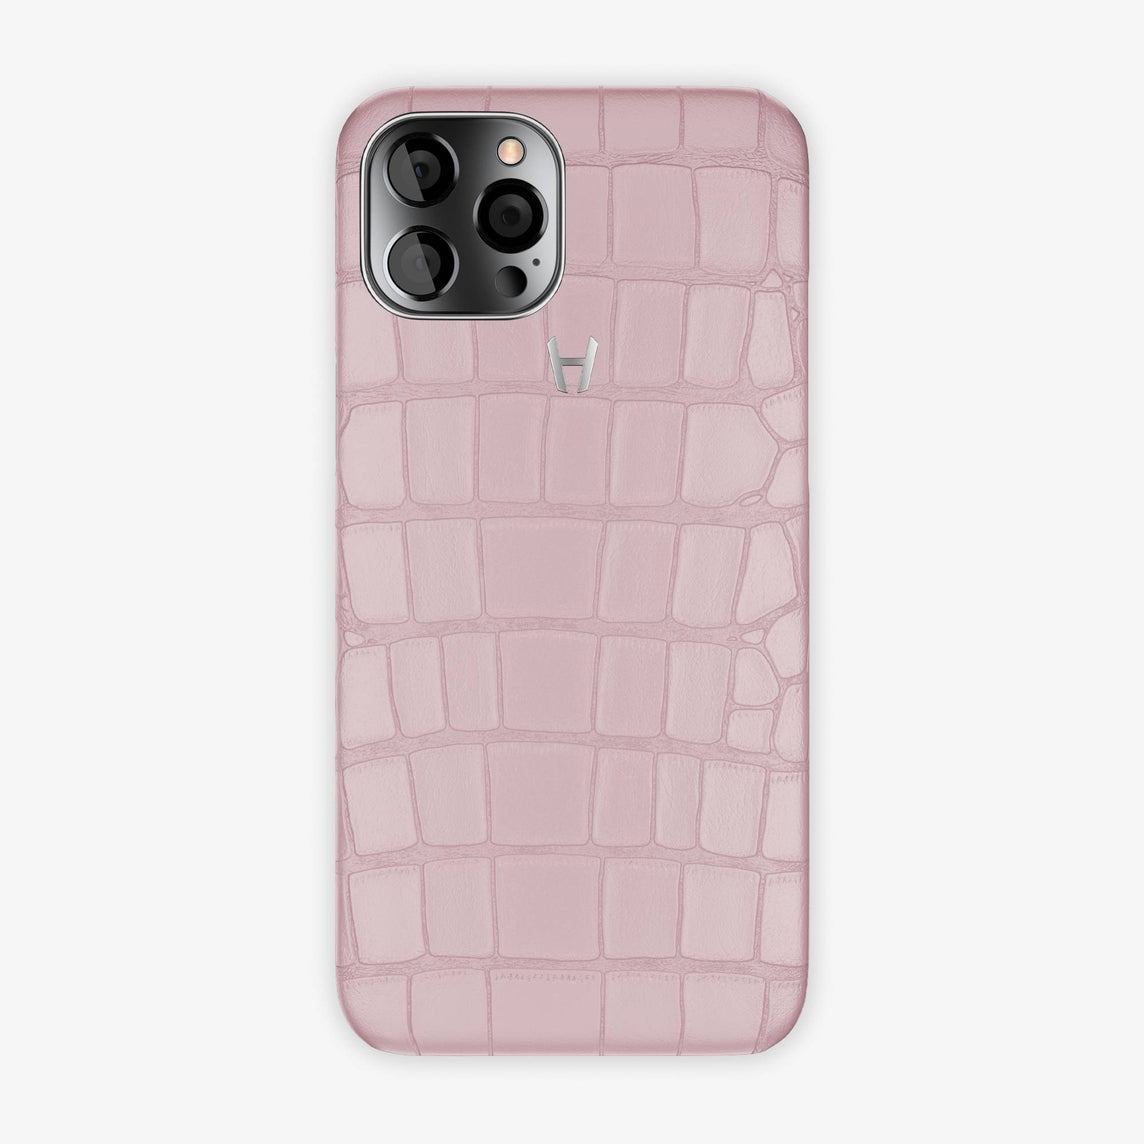 Alligator Case iPhone 12 Pro Max | Pink Poudre - Stainless Steel